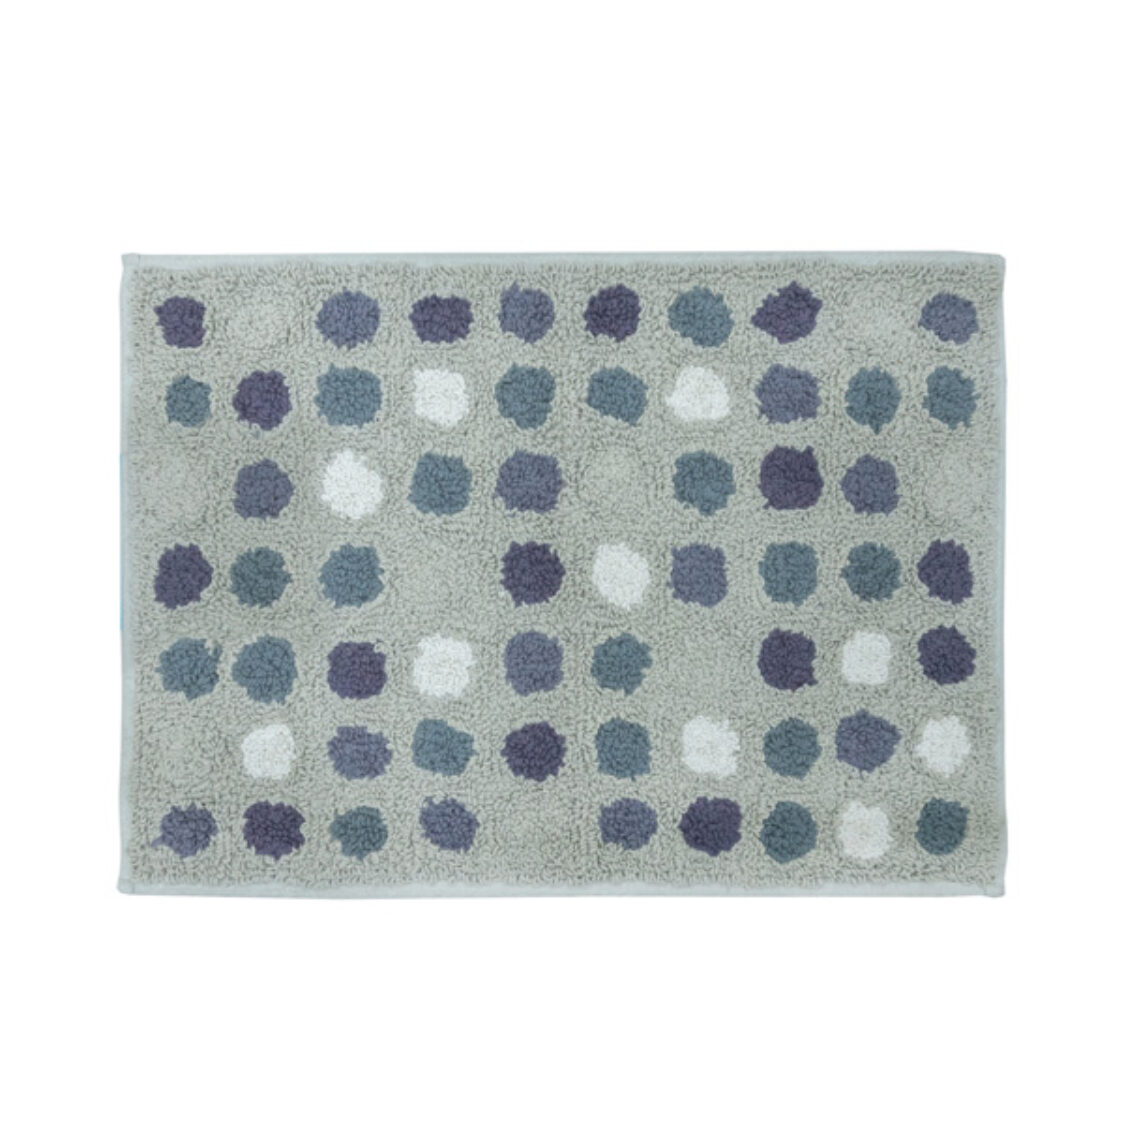 Suite Collection Polka Dot S - Light Grey